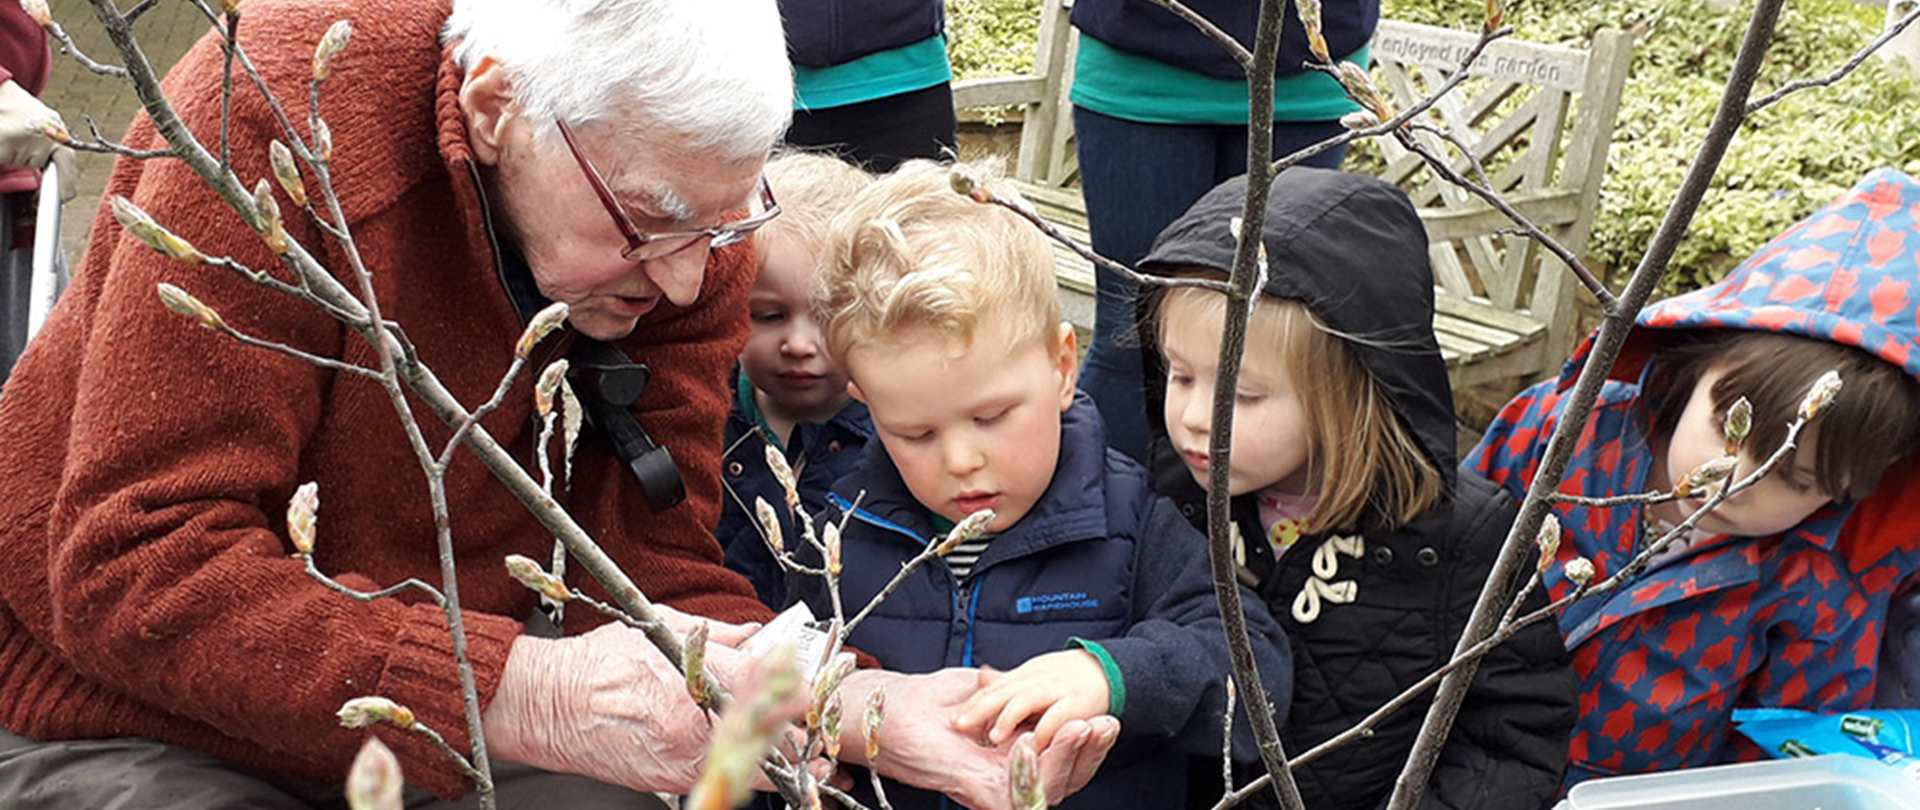 An older man and early years children gardening together